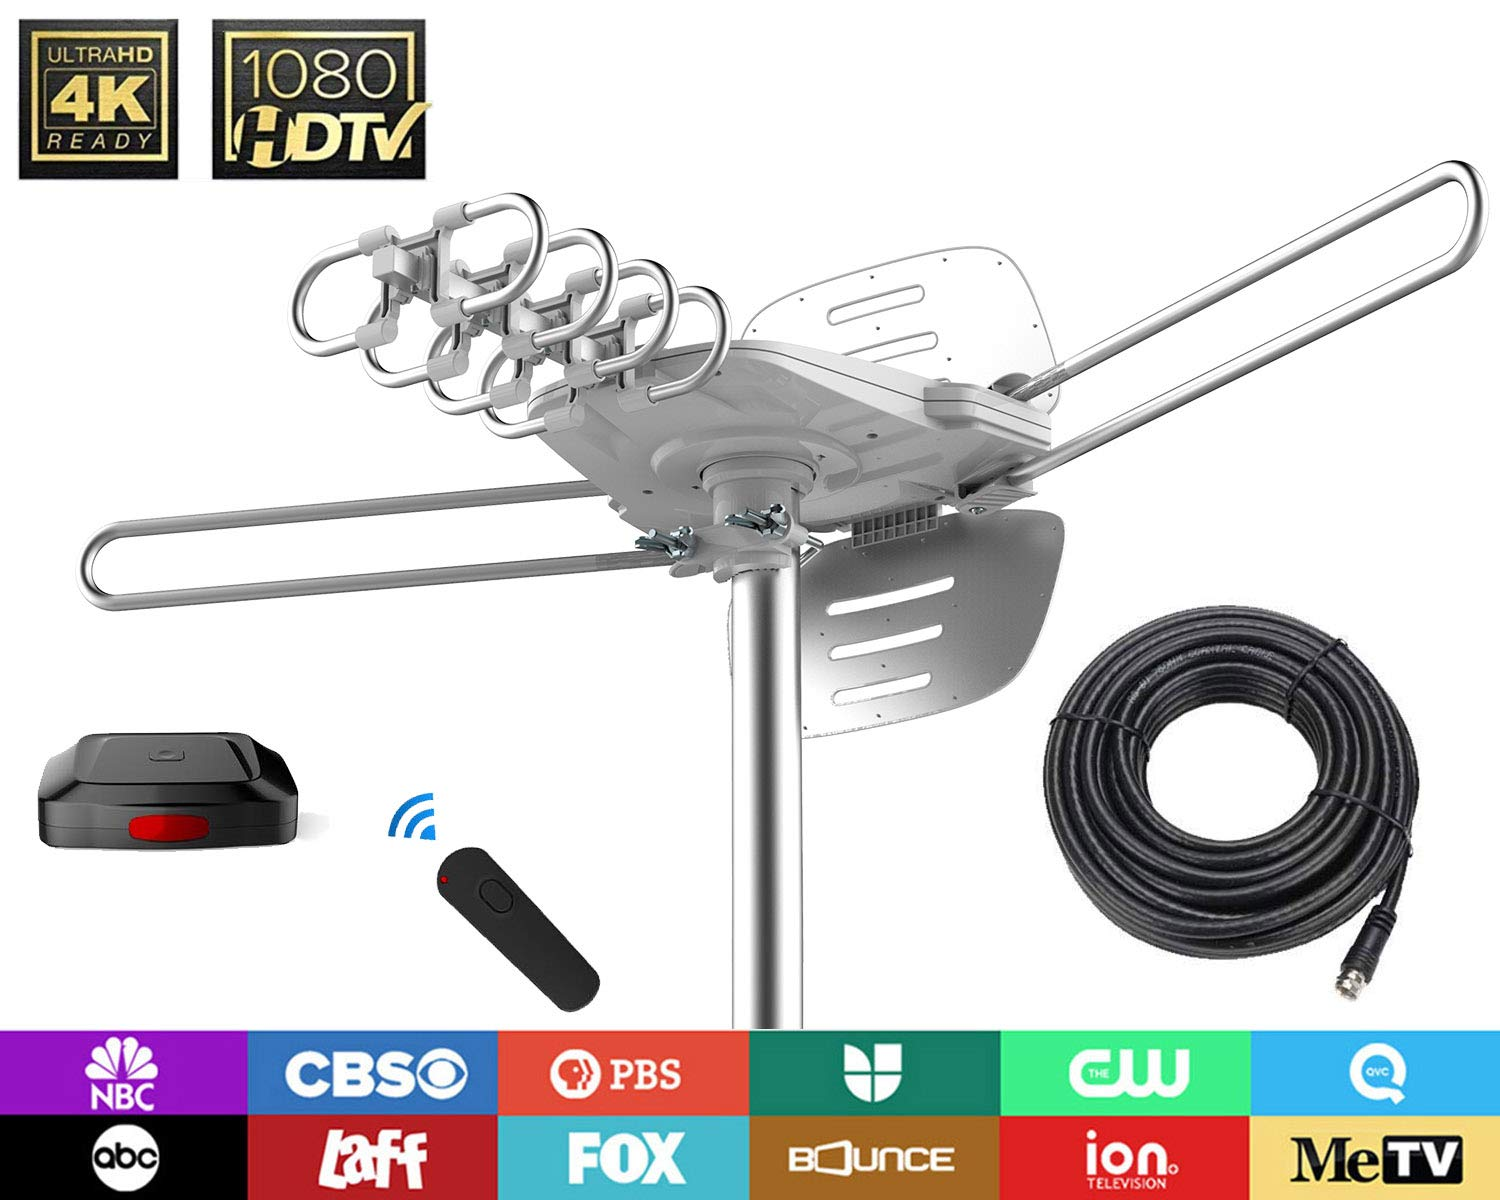 TV Antenna - 90% Pre-Assembled 150 Miles Range Outdoor Motorized 360 Degrees Amplified HDTV Antenna for 2 TVs Support - UHF/VHF 4K 1080P Channels Wireless Remote Control - 39FT Coax Cable by 1byone